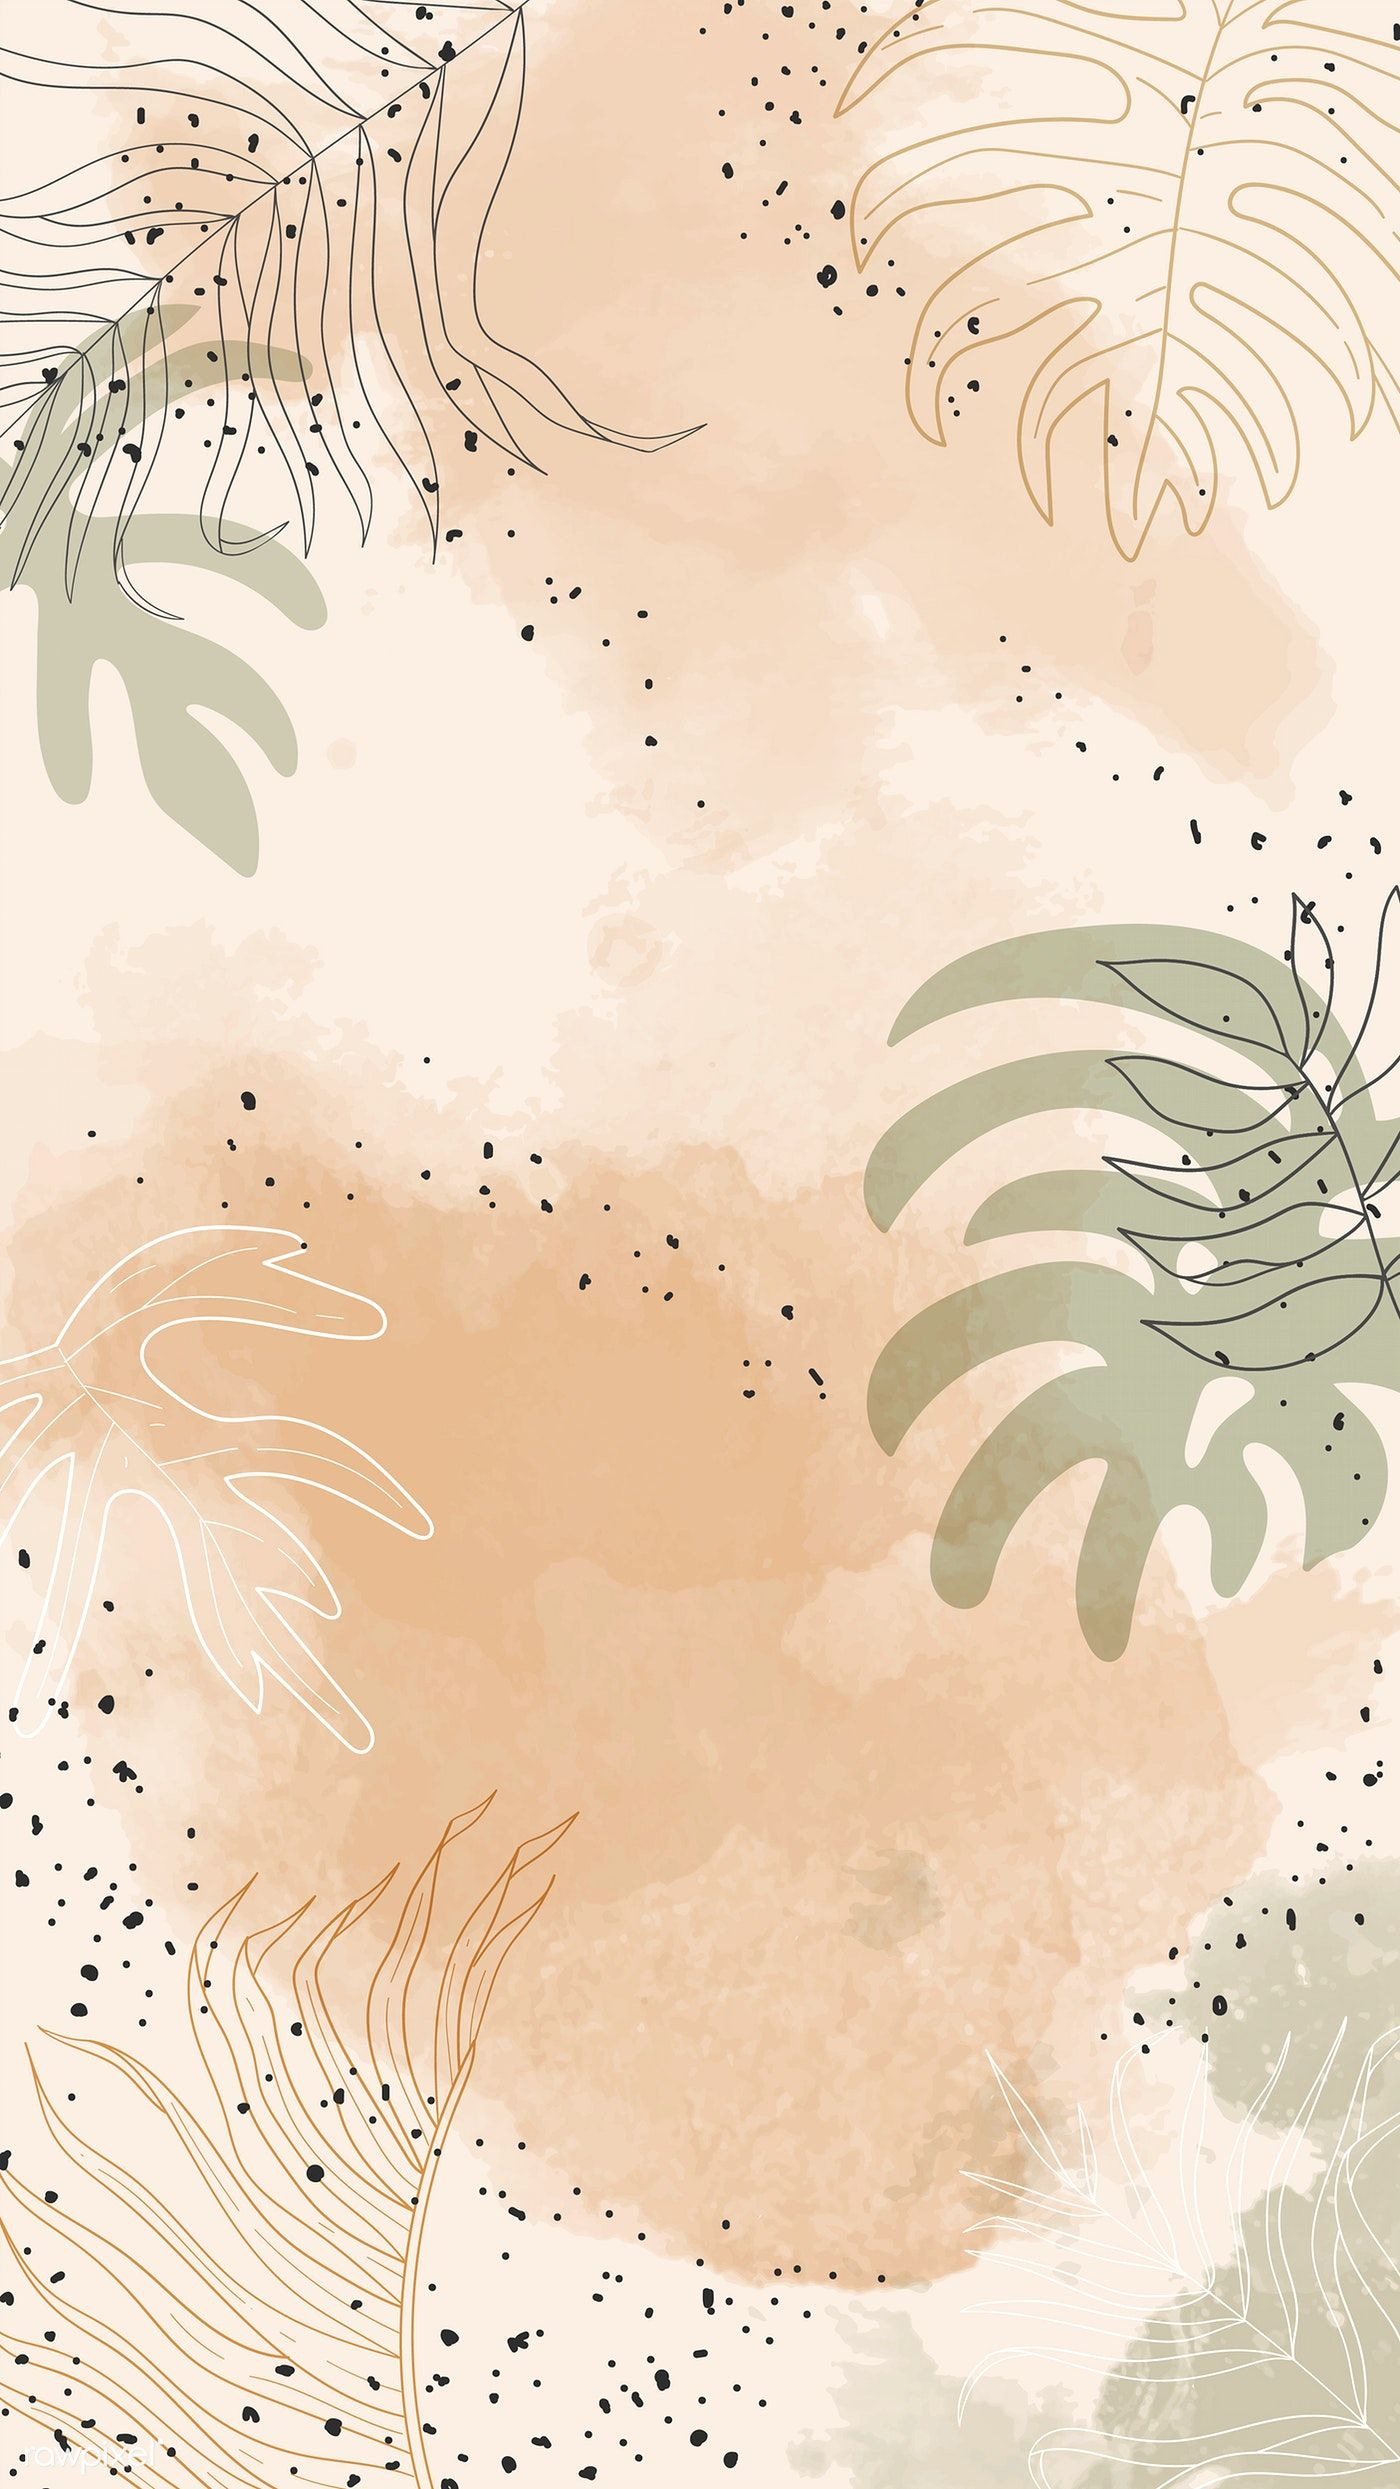 Beige Leafy Watercolor Mobile Phone Wallpaper Vector Premium Image By Rawpixel Com Painting Wallpaper Backgrounds Phone Wallpapers Abstract Iphone Wallpaper